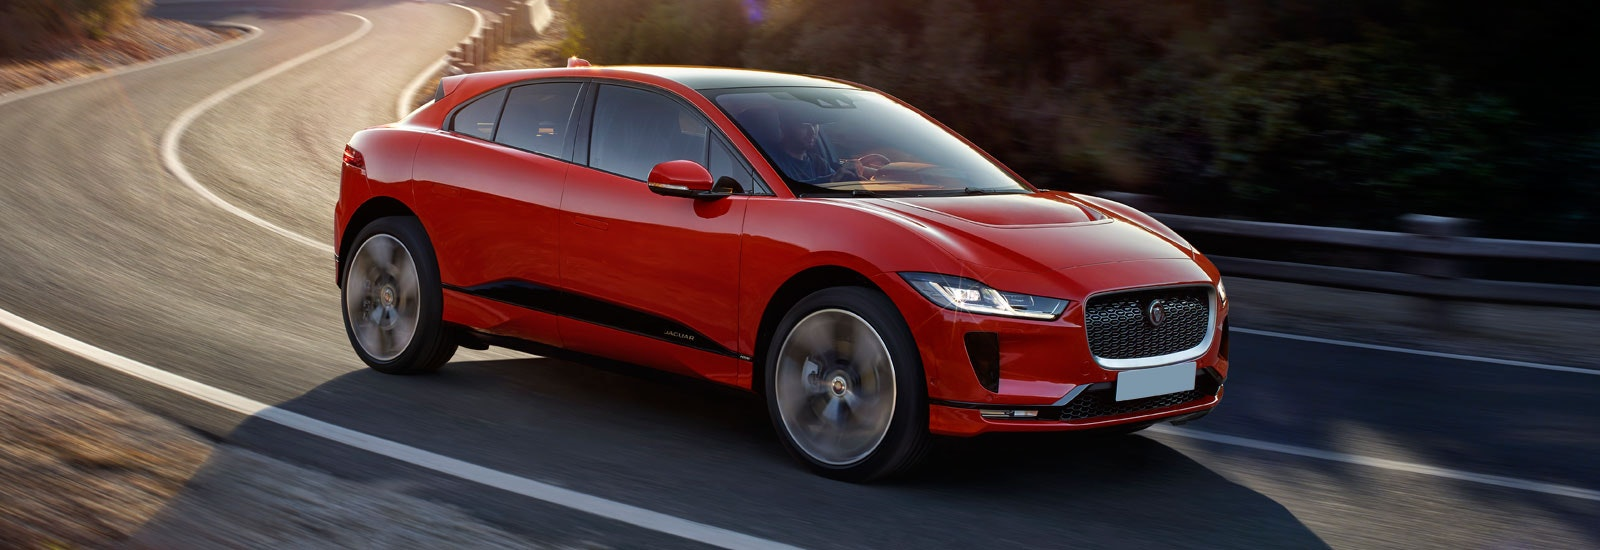 2018 Jaguar I-Pace electric SUV price, specs and release ...